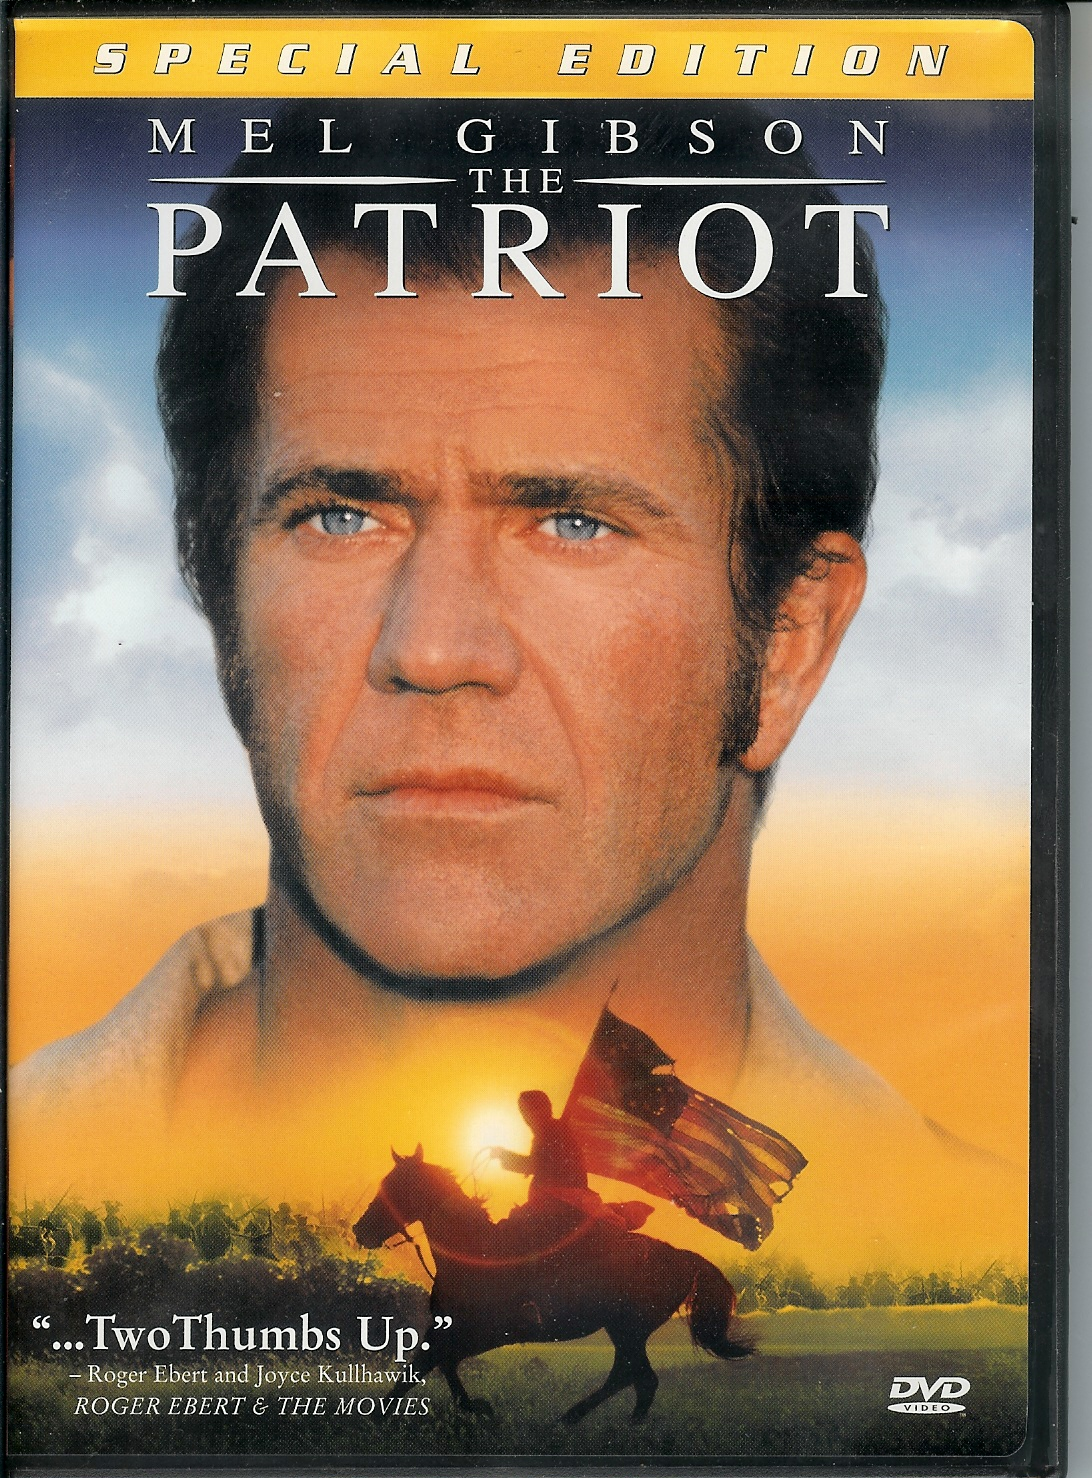 an analysis of the american revolution in the patriot the movie It is, however, nothing like anything that happened in the american revolution it took the civil war to end slavery in the us, almost a century after the patriot is set even then, south carolina was on the wrong side.